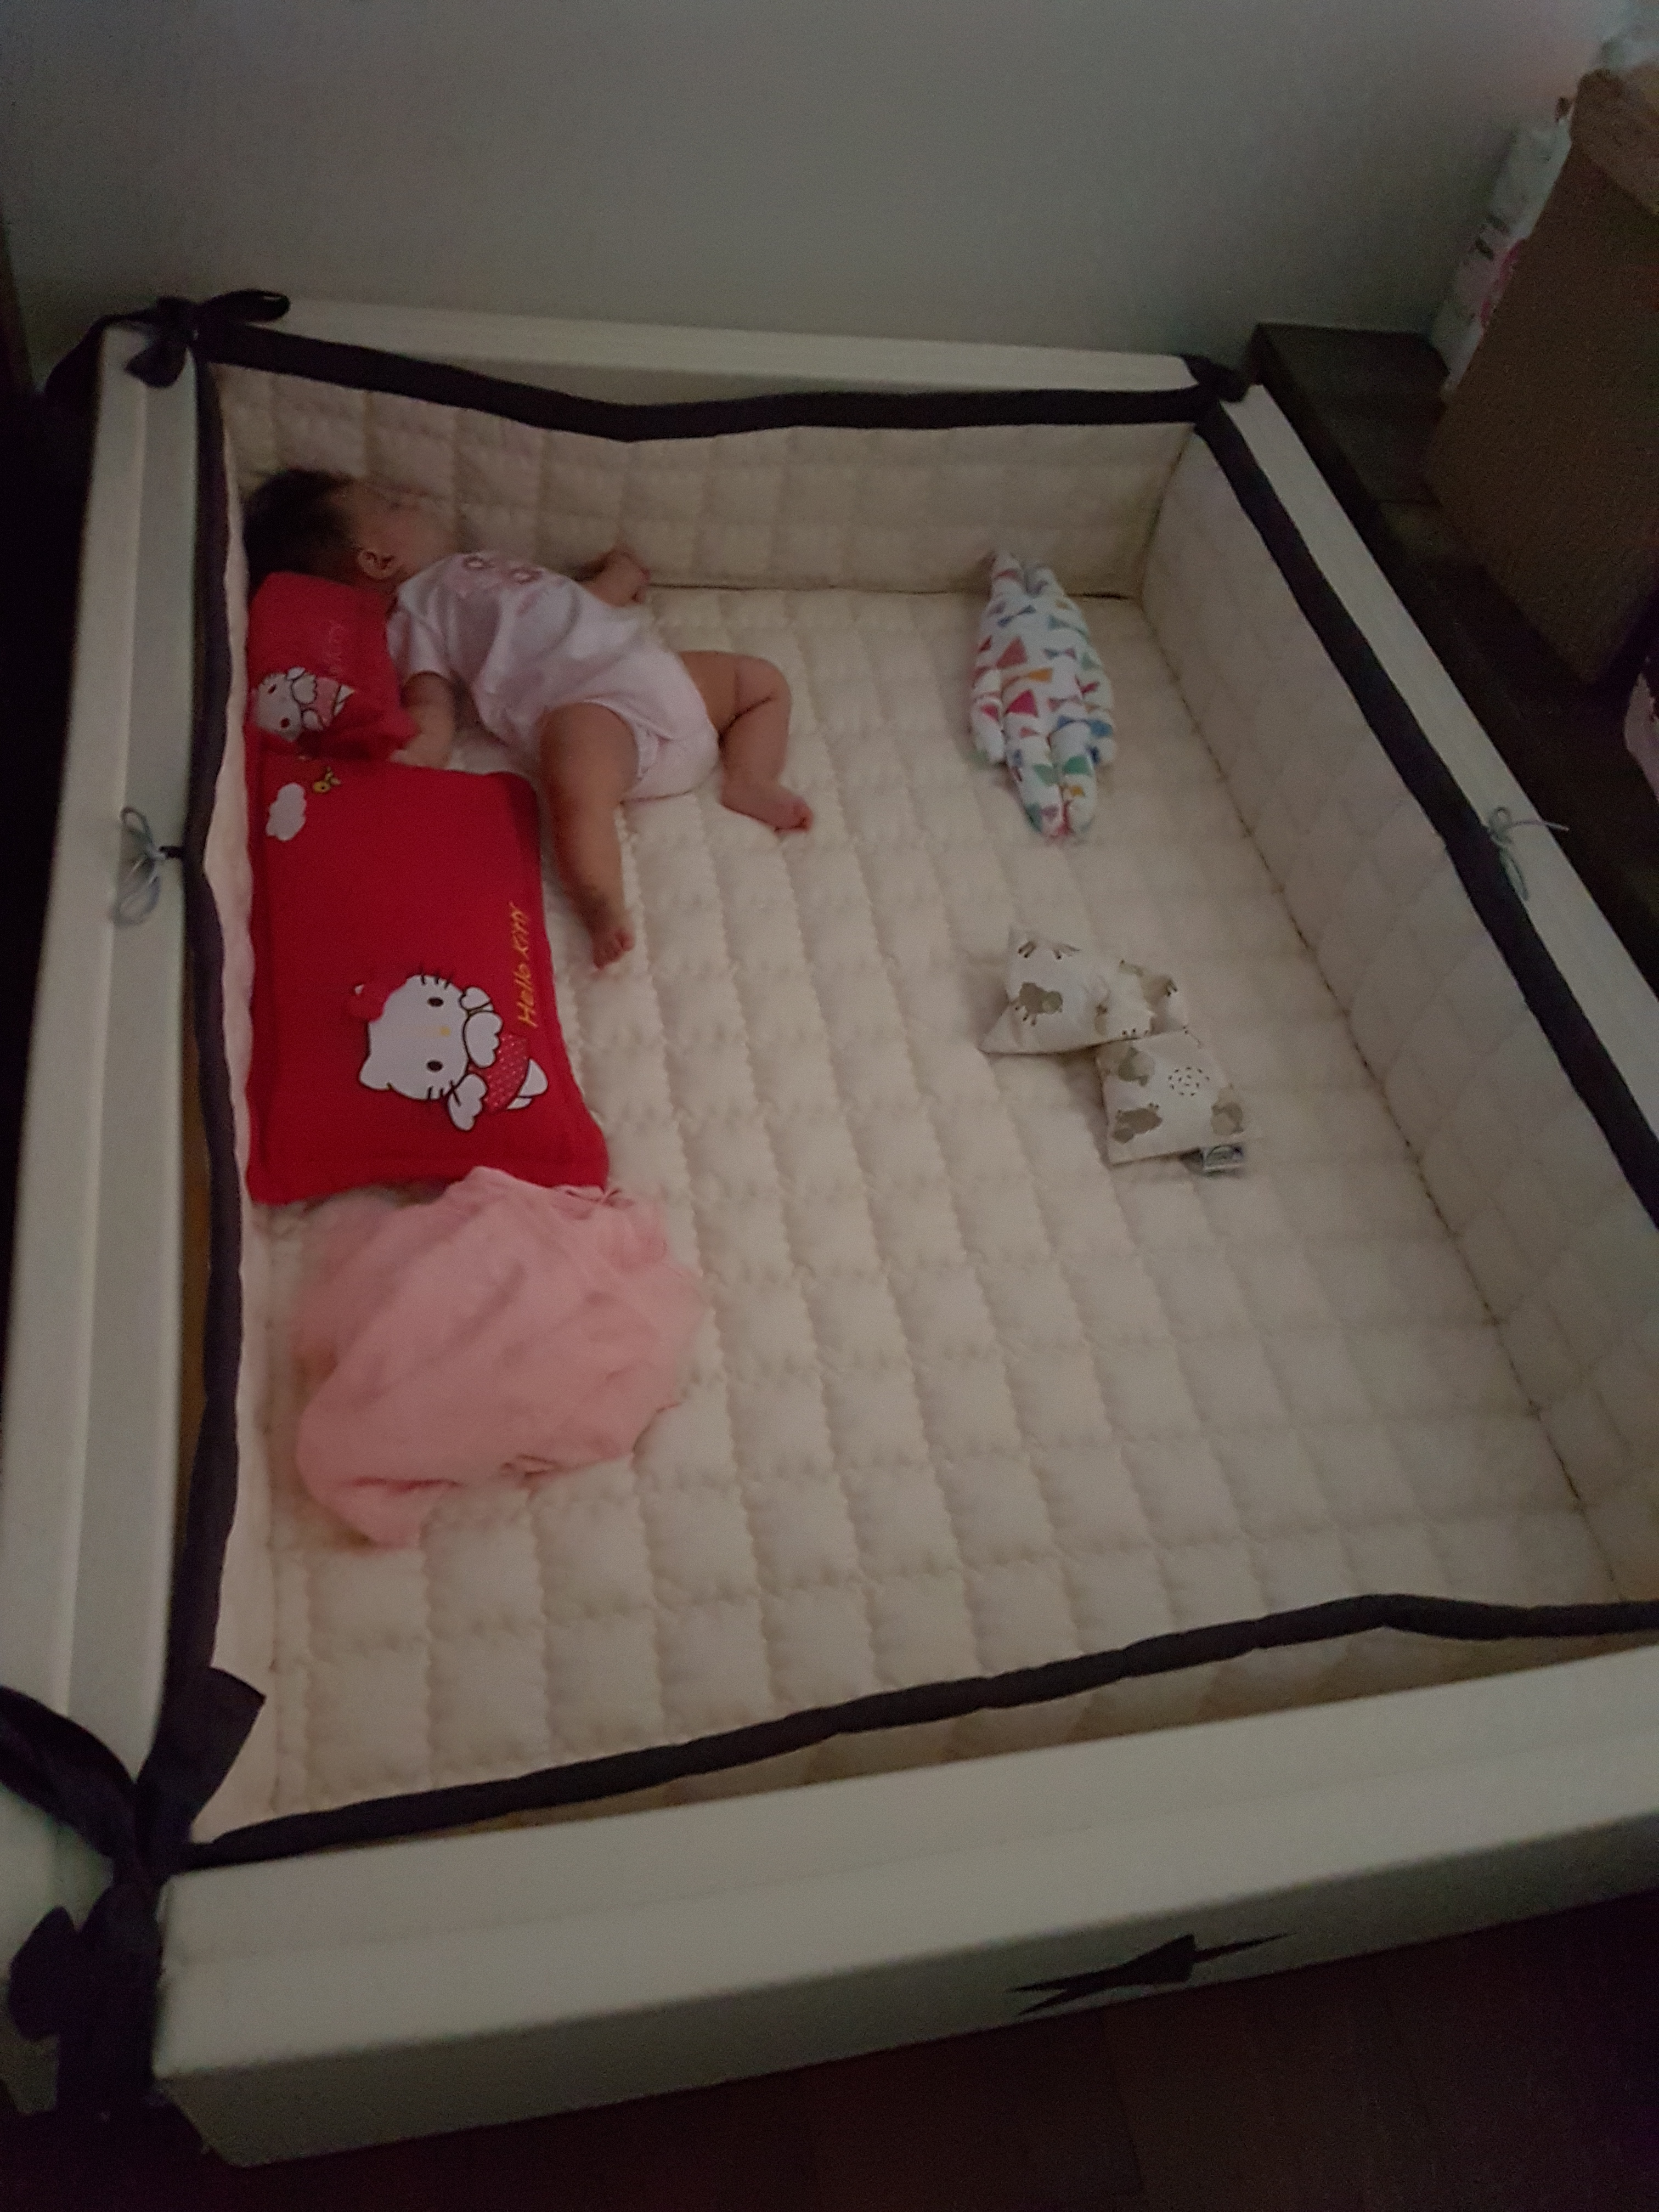 Baby Cots That Attach To Beds Review Ggumbi New Foldable Baby Bumper Bed 9mamas